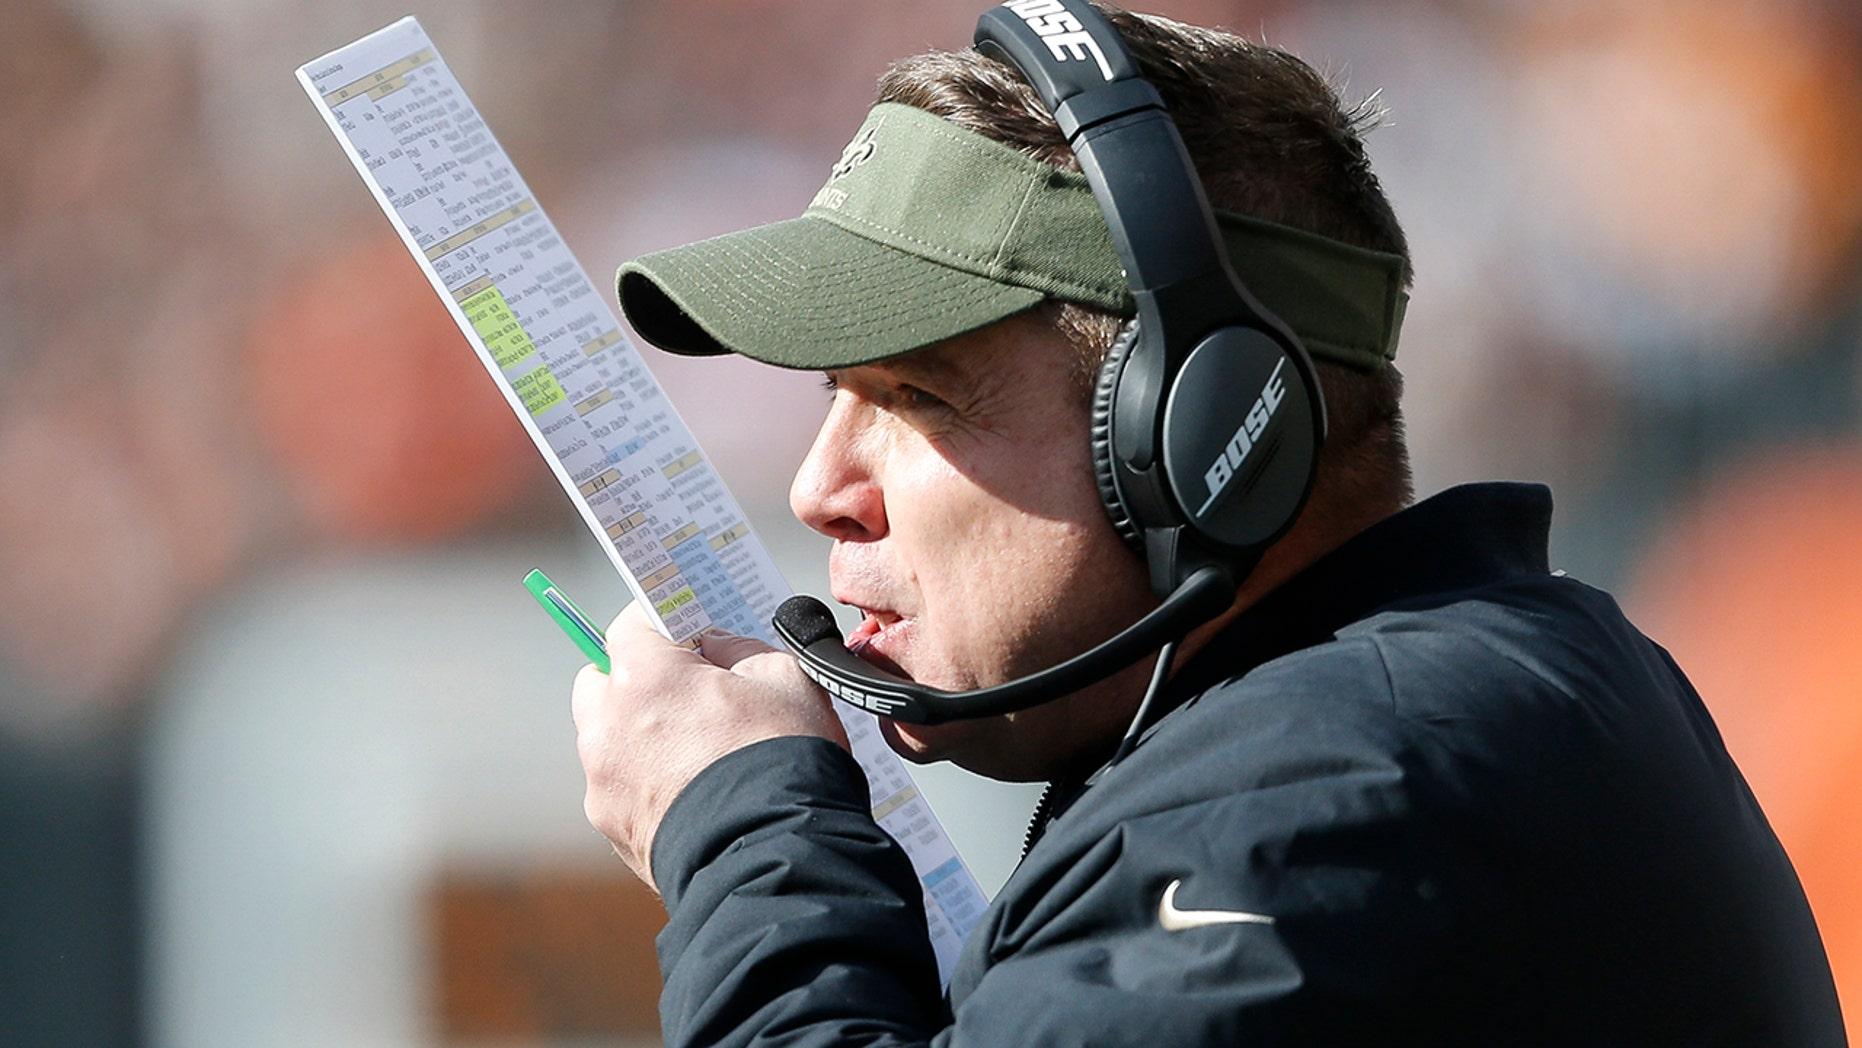 New Orleans Saints head coach Sean Payton was accused of smashing a fire alarm at Paul Brown Stadium in Cincinnati.